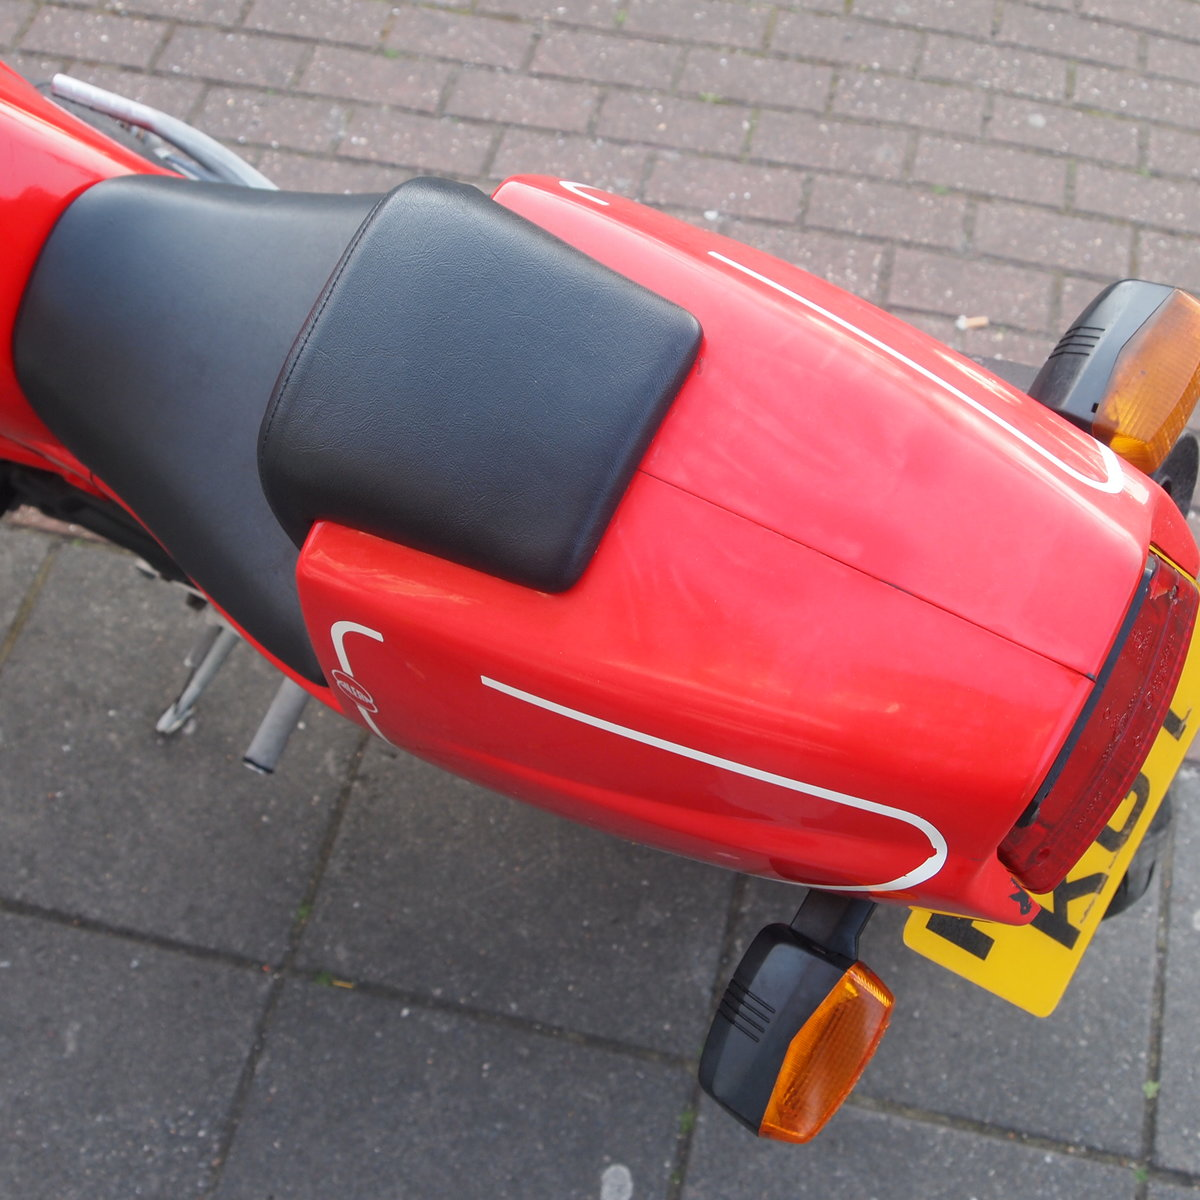 1989 Gilera Saturno Fitted With Running Paris Daker 550cc Unit. SOLD (picture 4 of 6)